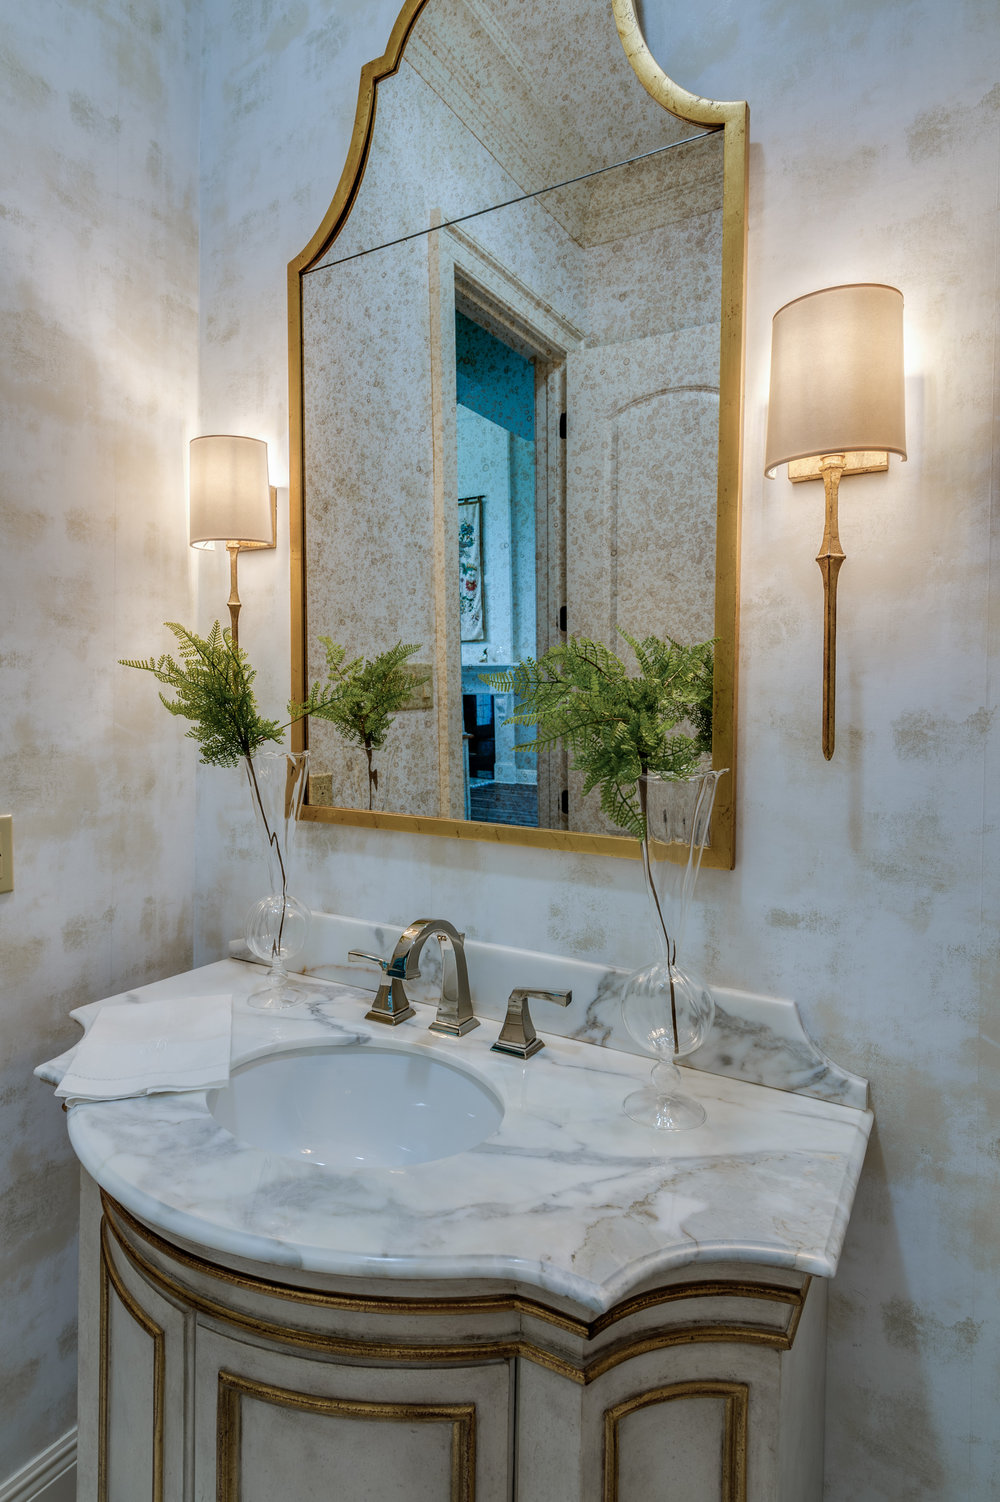 khb interiors new orleans interior designer old metairie decorator garden district new orleans saks fifth avenue new orleans powder room furniture mel